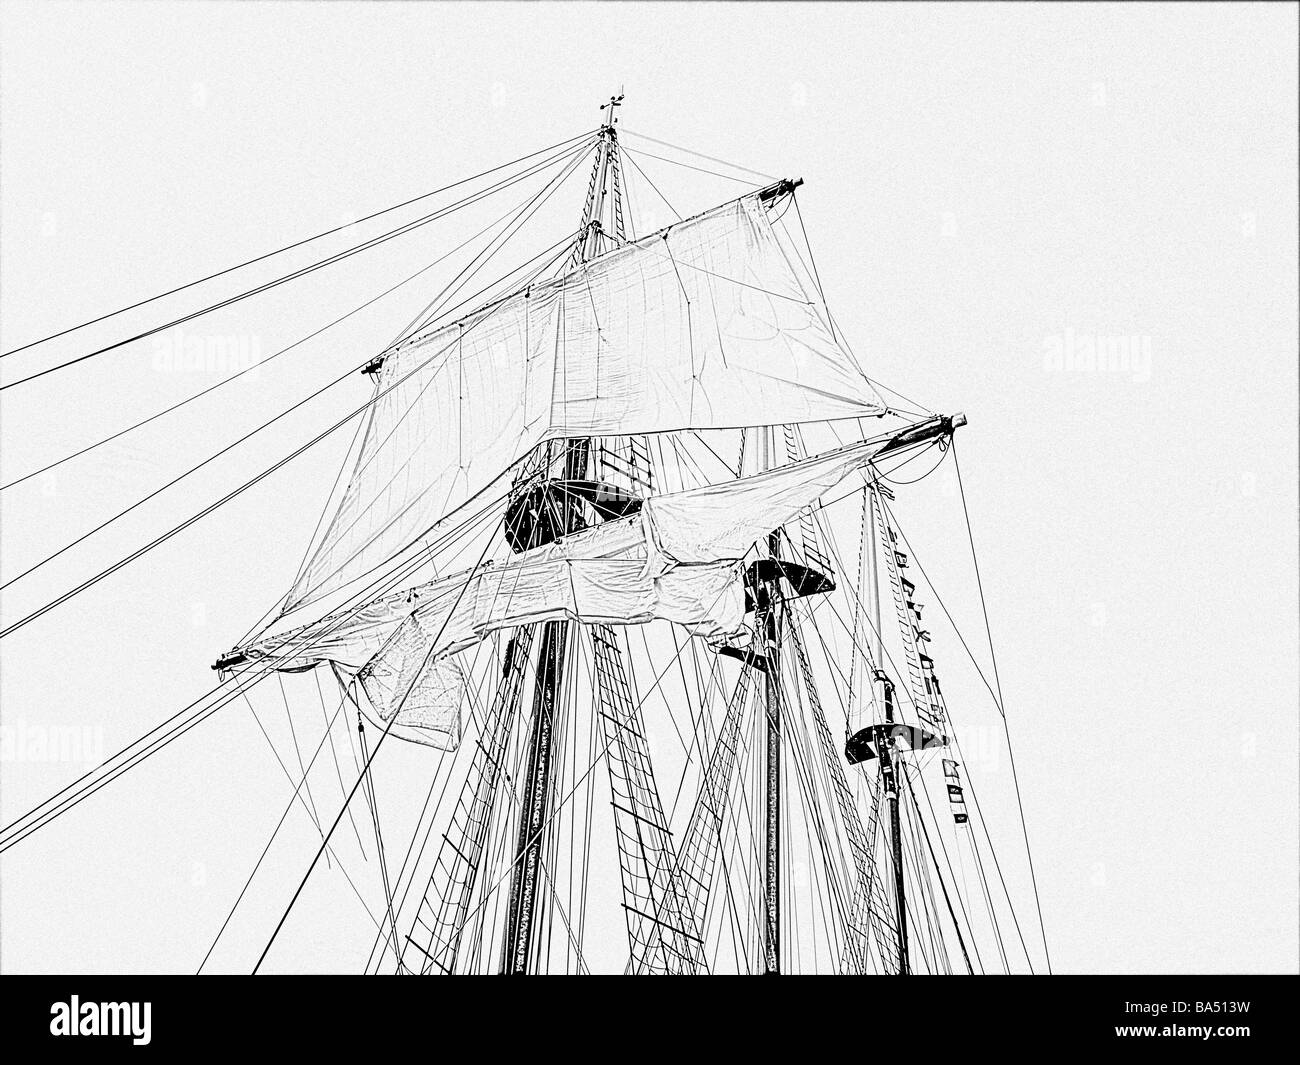 tall-ship tall-ships three masts with unfurled top sail on mast with ropes ladders, no deck, drawing outline in - Stock Image